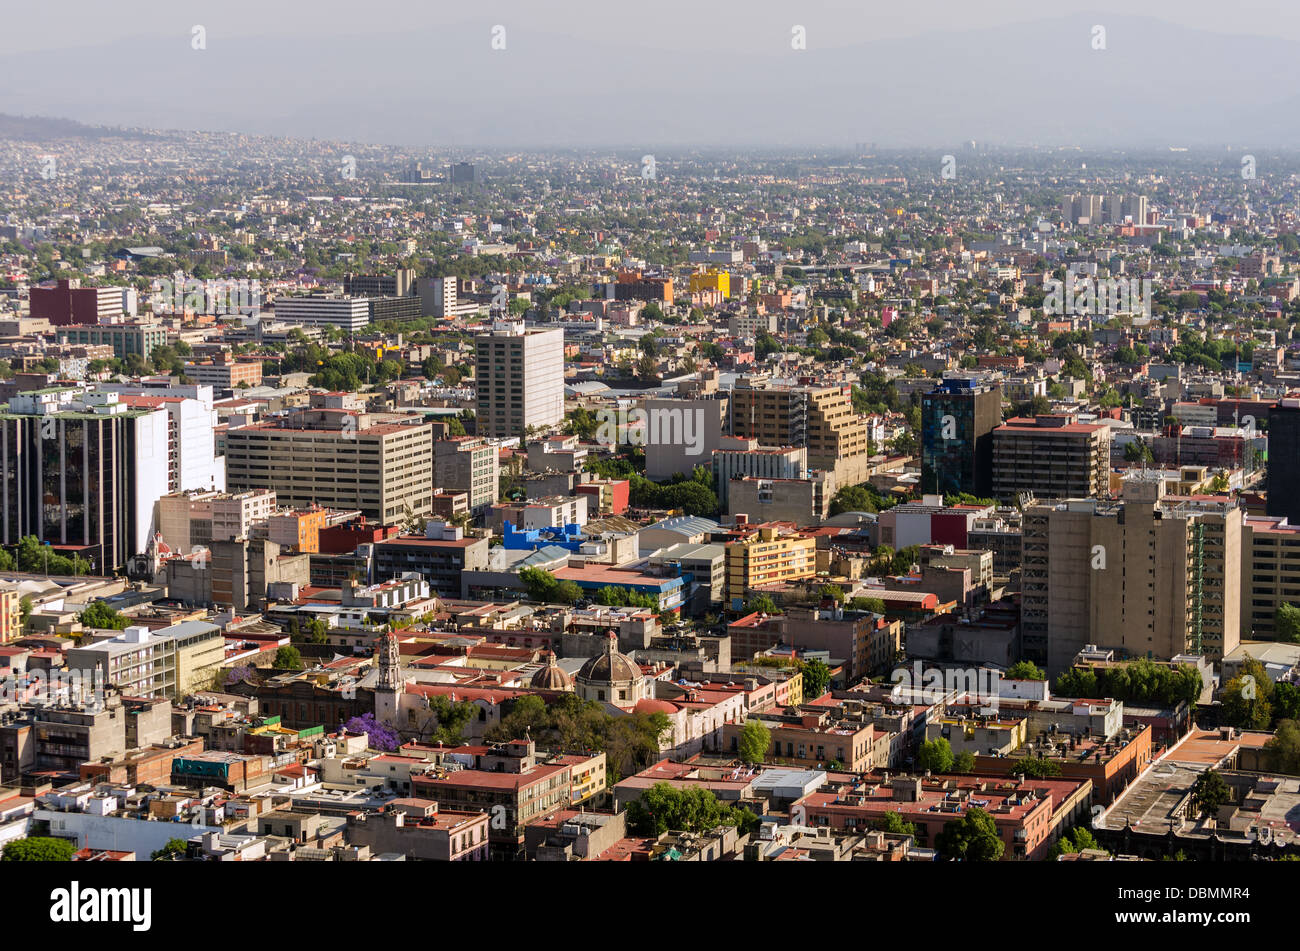 Wide angle cityscape of Mexico City - Stock Image